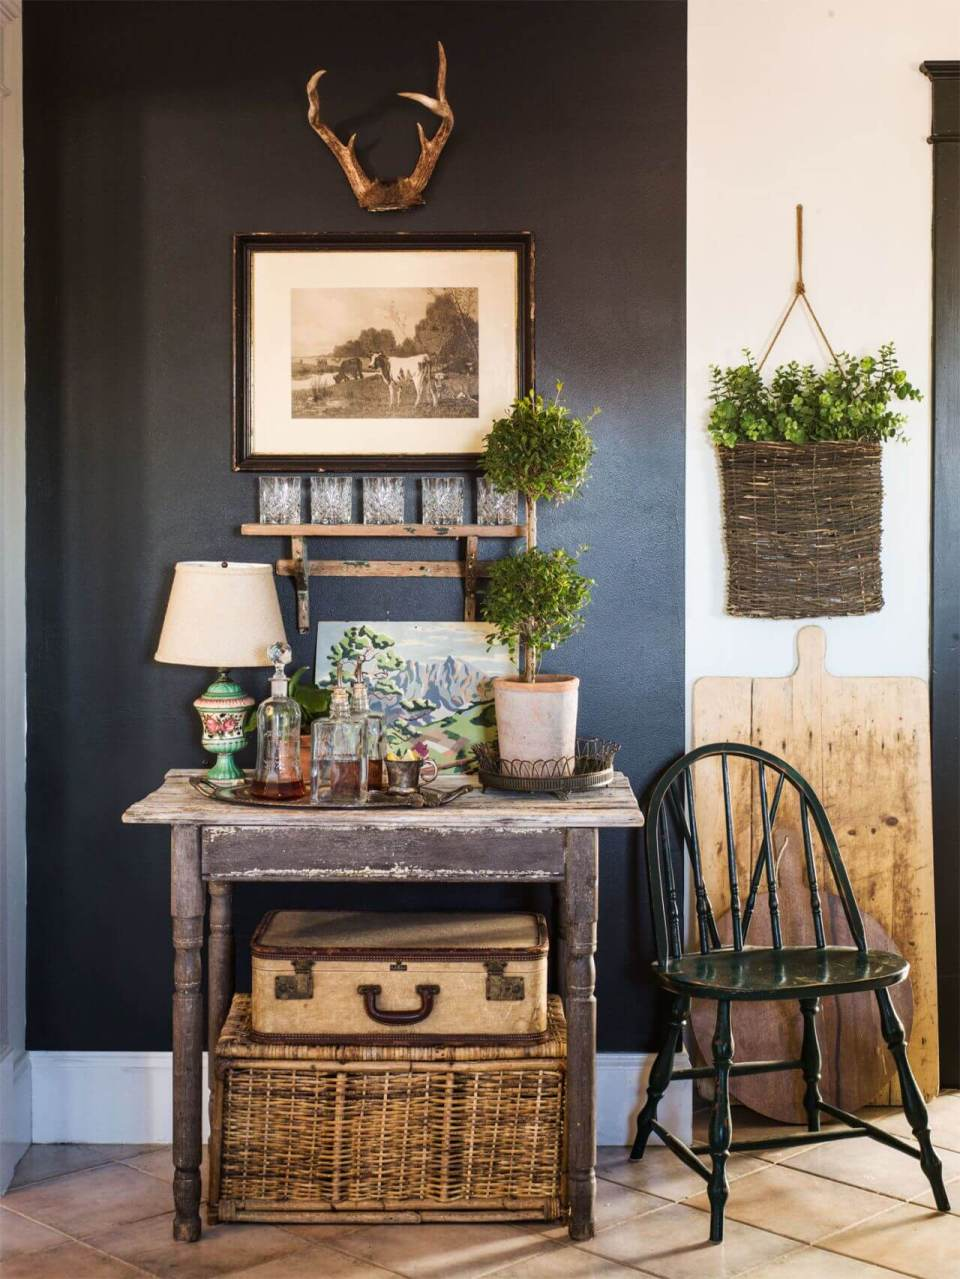 Dark accent wall, old table with topiary plants